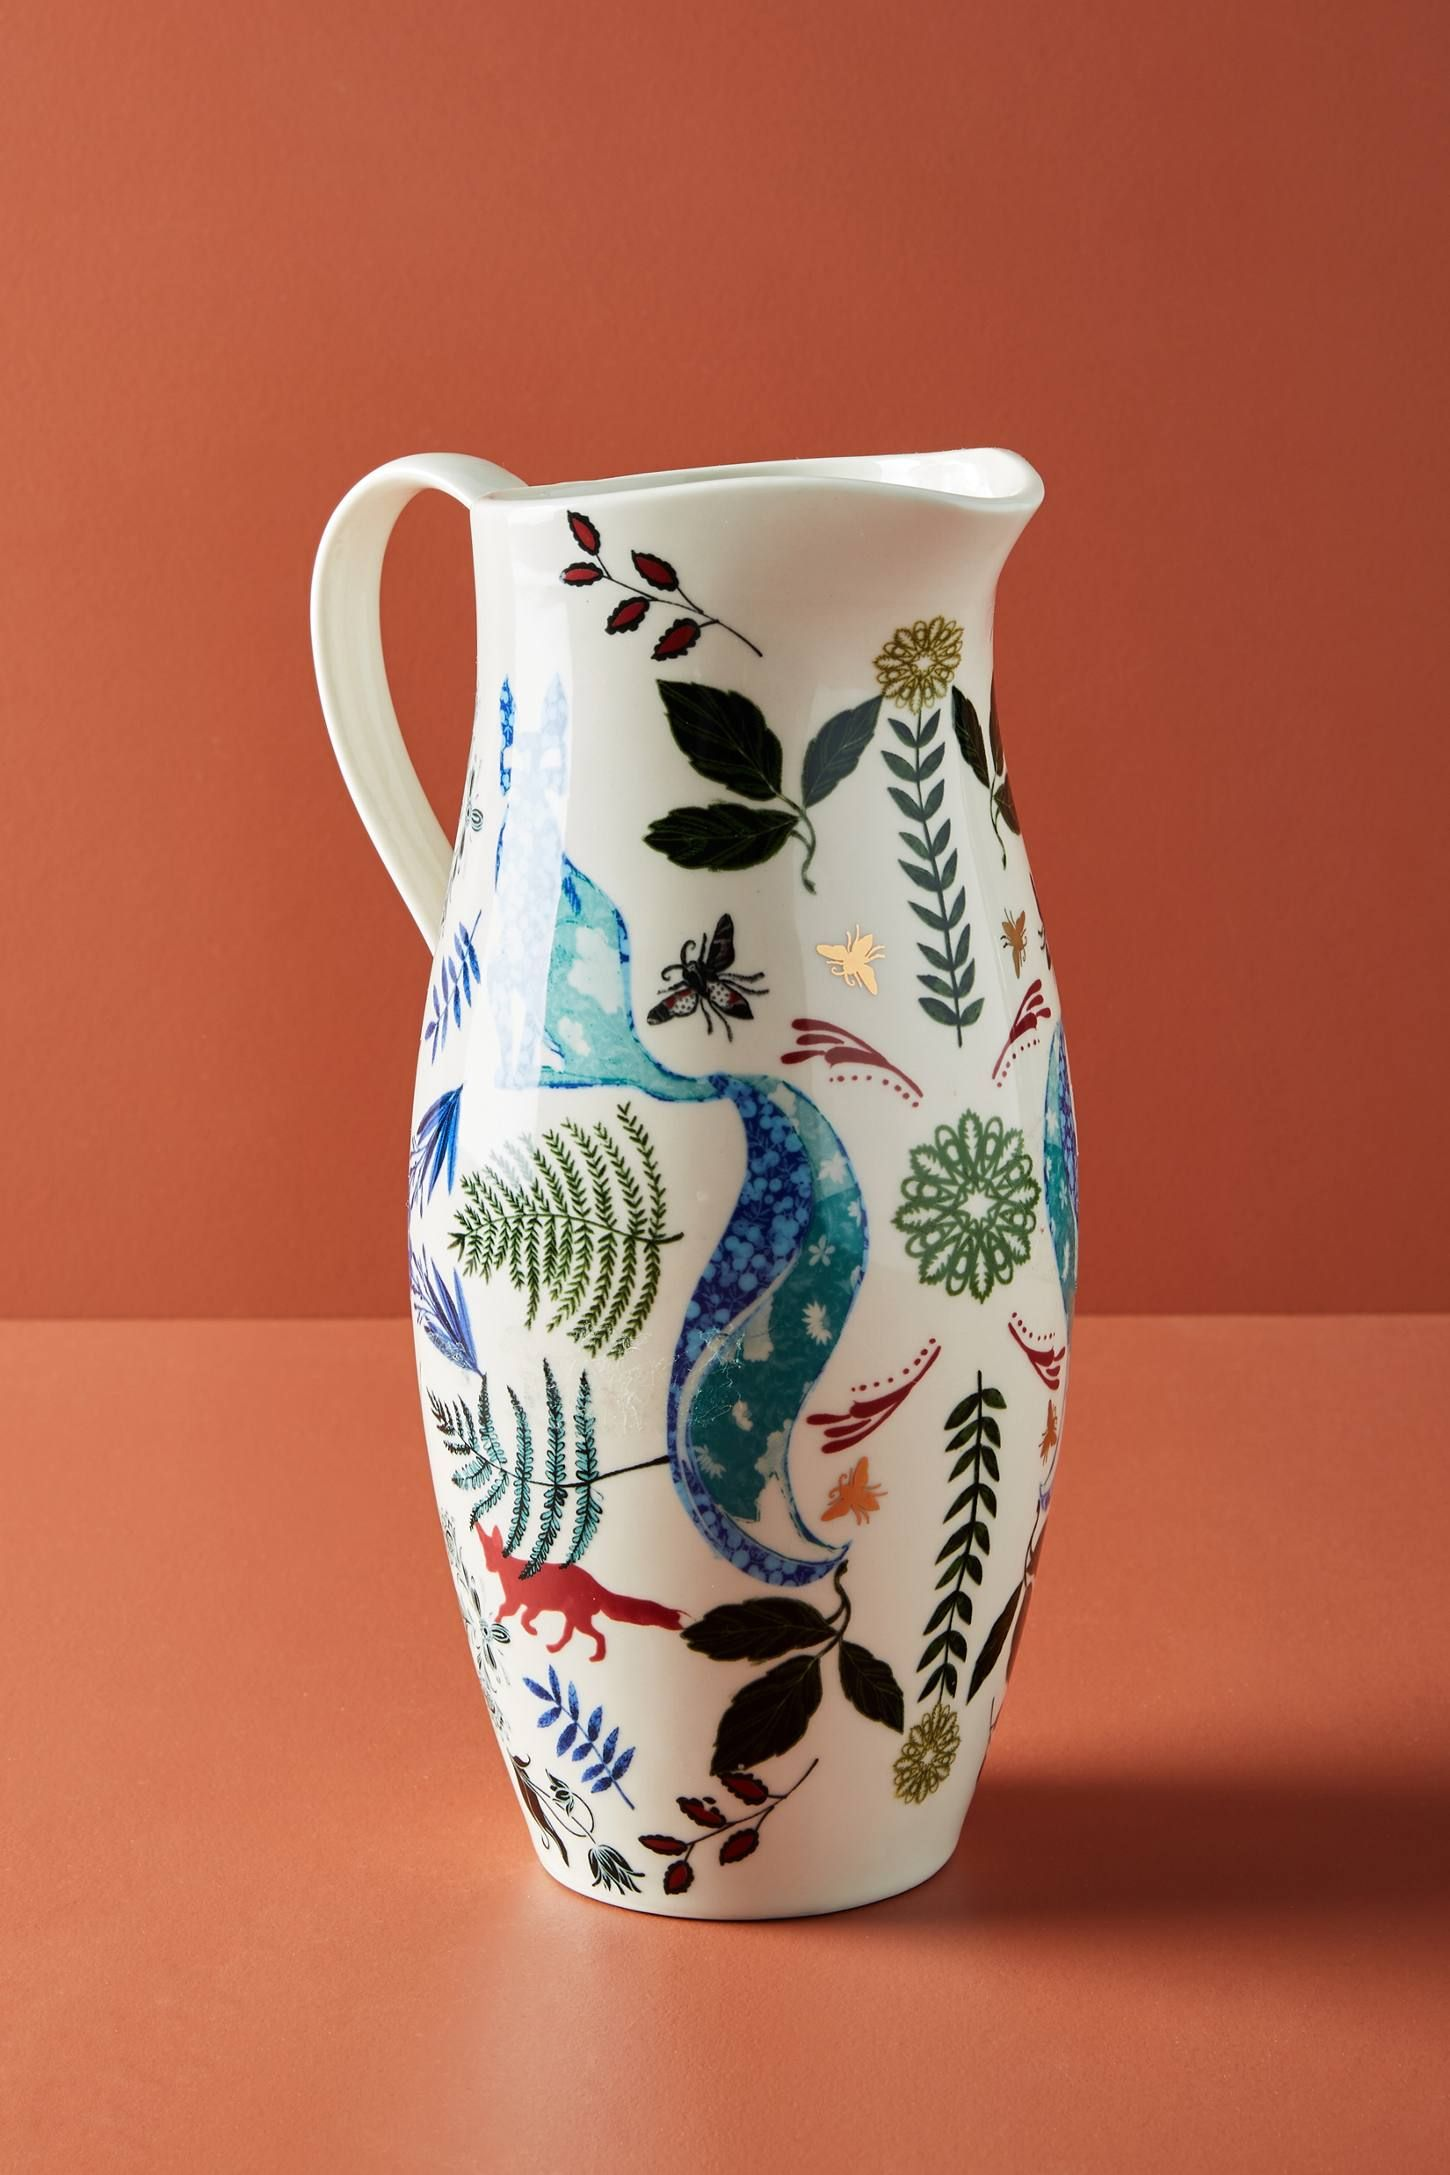 Josie Shenoy Flora And Fauna Pitcher Anthropologie Unique Pitcher Antique Inspiration Floral Pillowcase